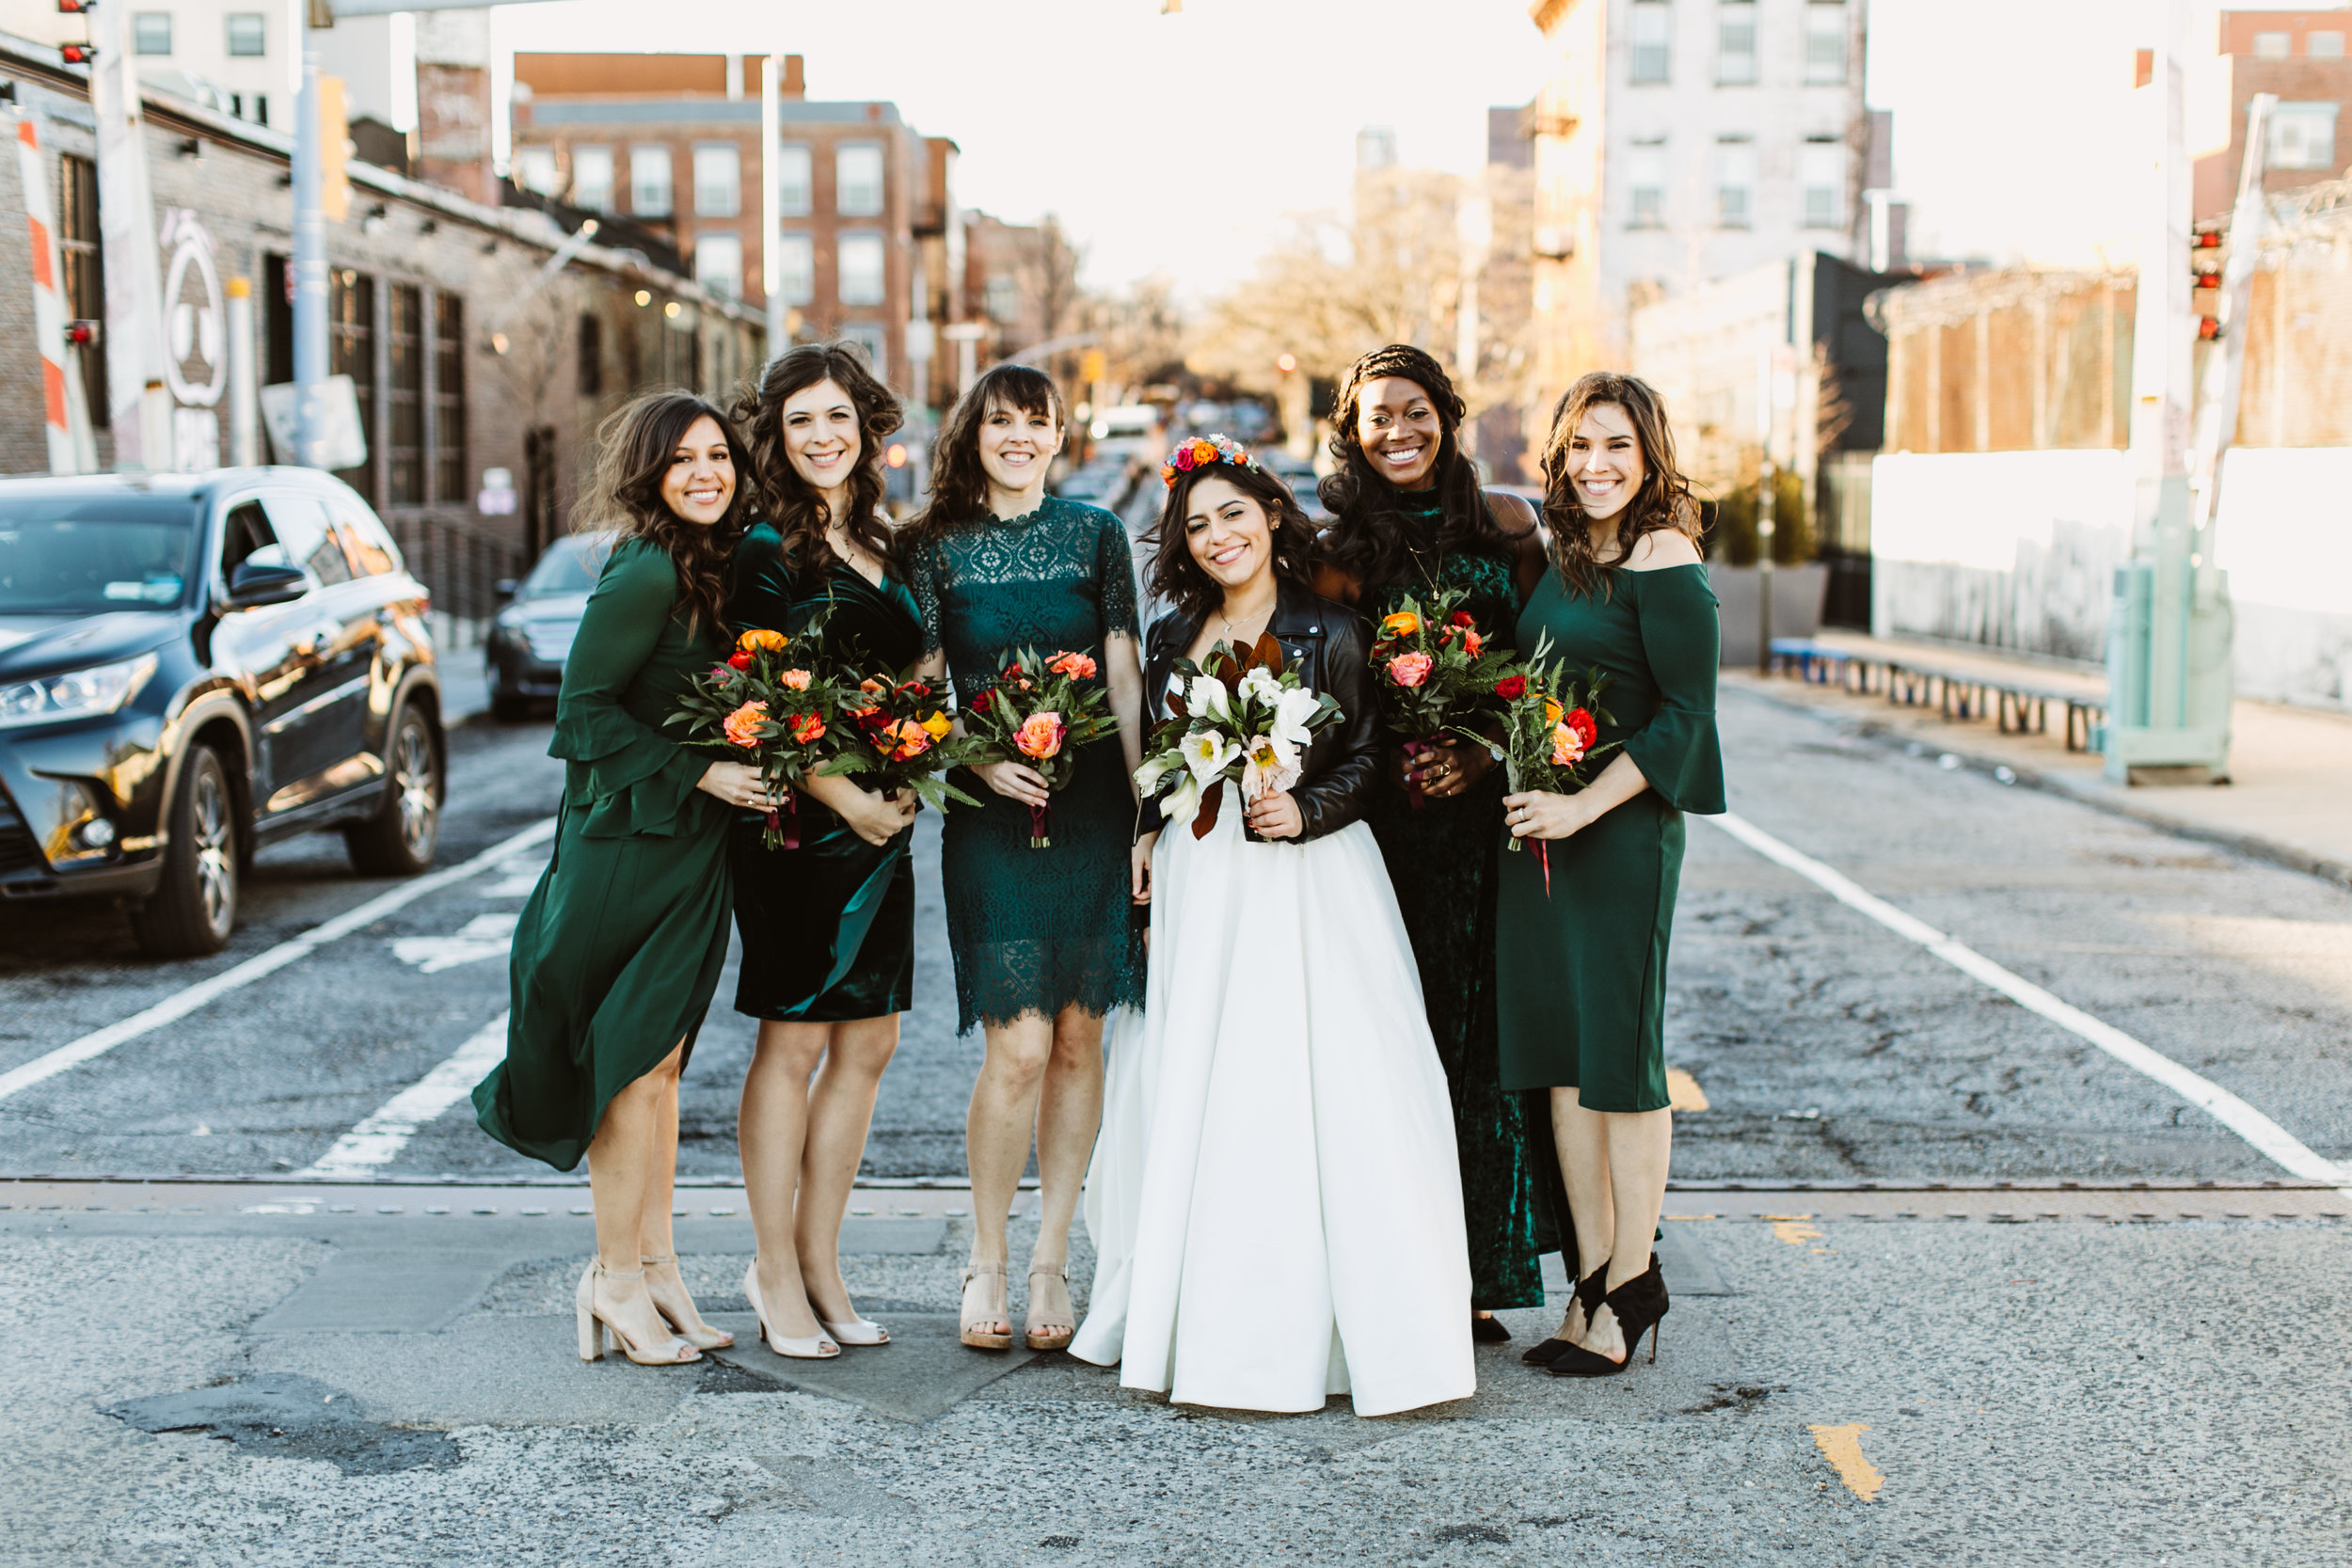 wedding wire - How to Tell Someone They're Not a Bridesmaid